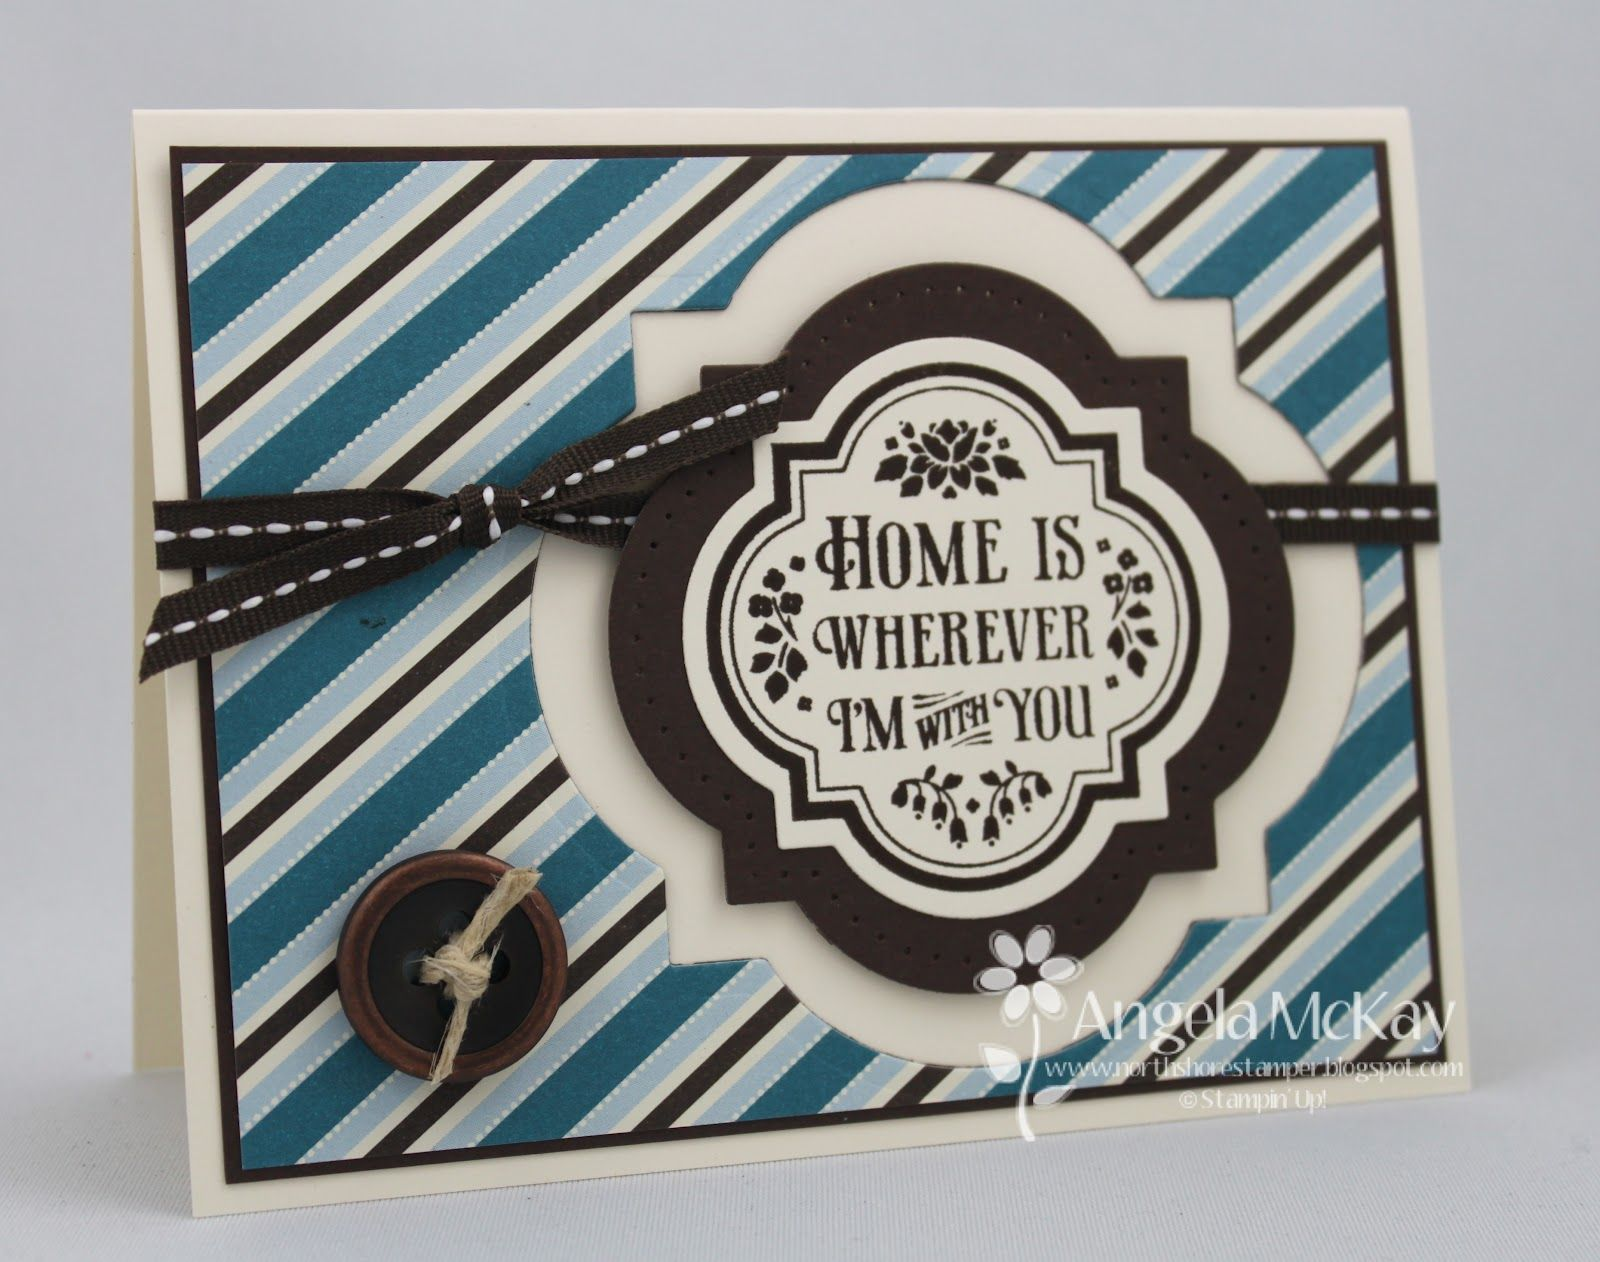 North Shore Stamper: Stampin' Royalty Challenge #134~ Buttons!